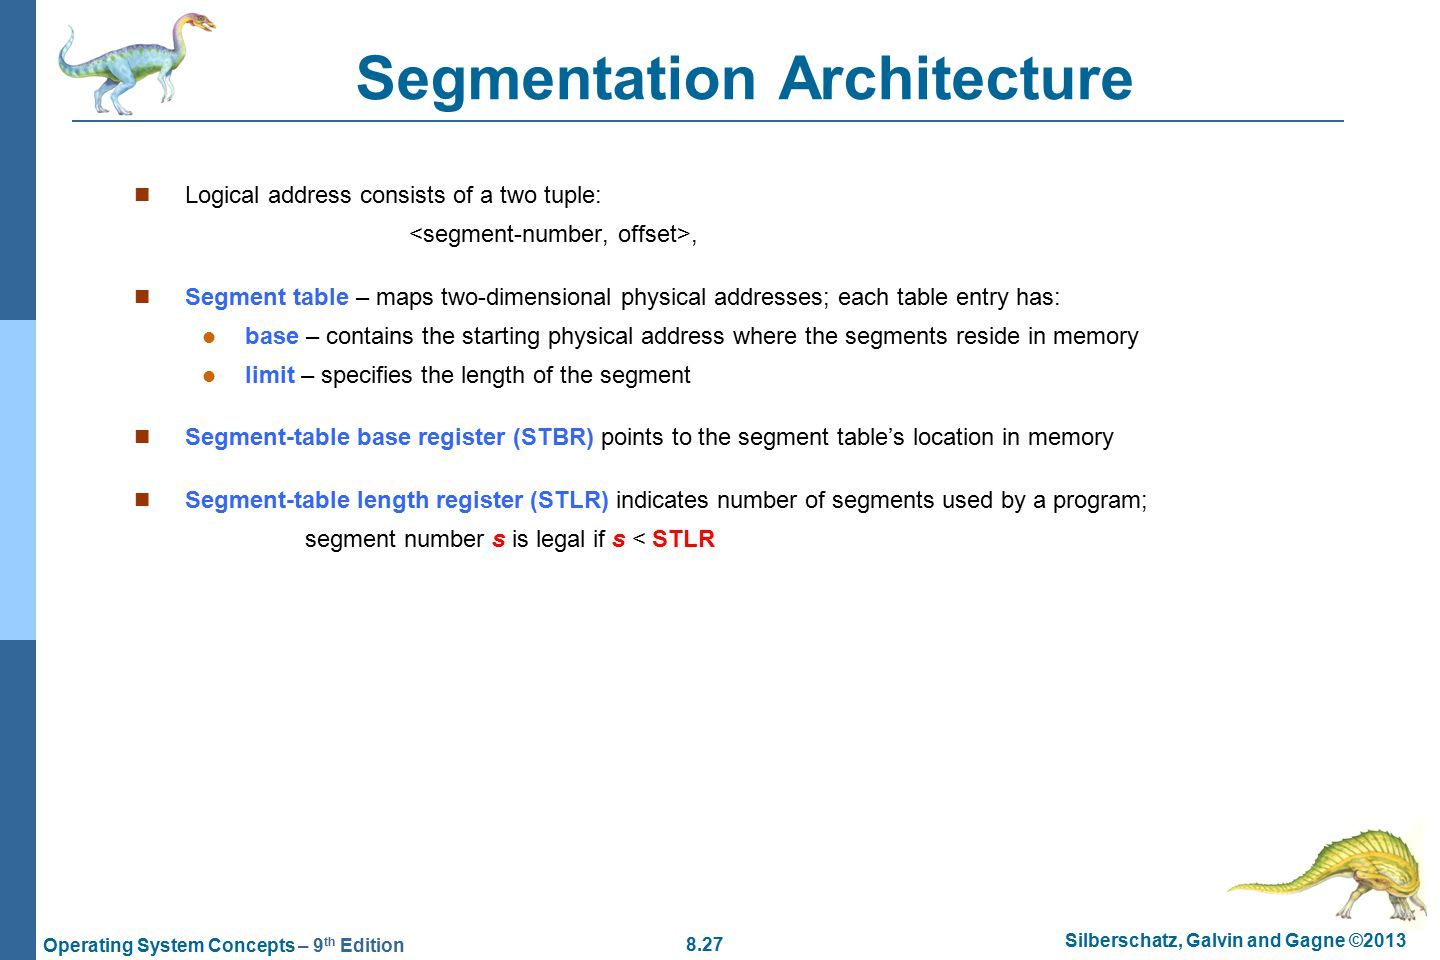 8.27 Silberschatz, Galvin and Gagne ©2013 Operating System Concepts – 9 th Edition Segmentation Architecture Logical address consists of a two tuple:, Segment table – maps two-dimensional physical addresses; each table entry has: base – contains the starting physical address where the segments reside in memory limit – specifies the length of the segment Segment-table base register (STBR) points to the segment table's location in memory Segment-table length register (STLR) indicates number of segments used by a program; segment number s is legal if s < STLR